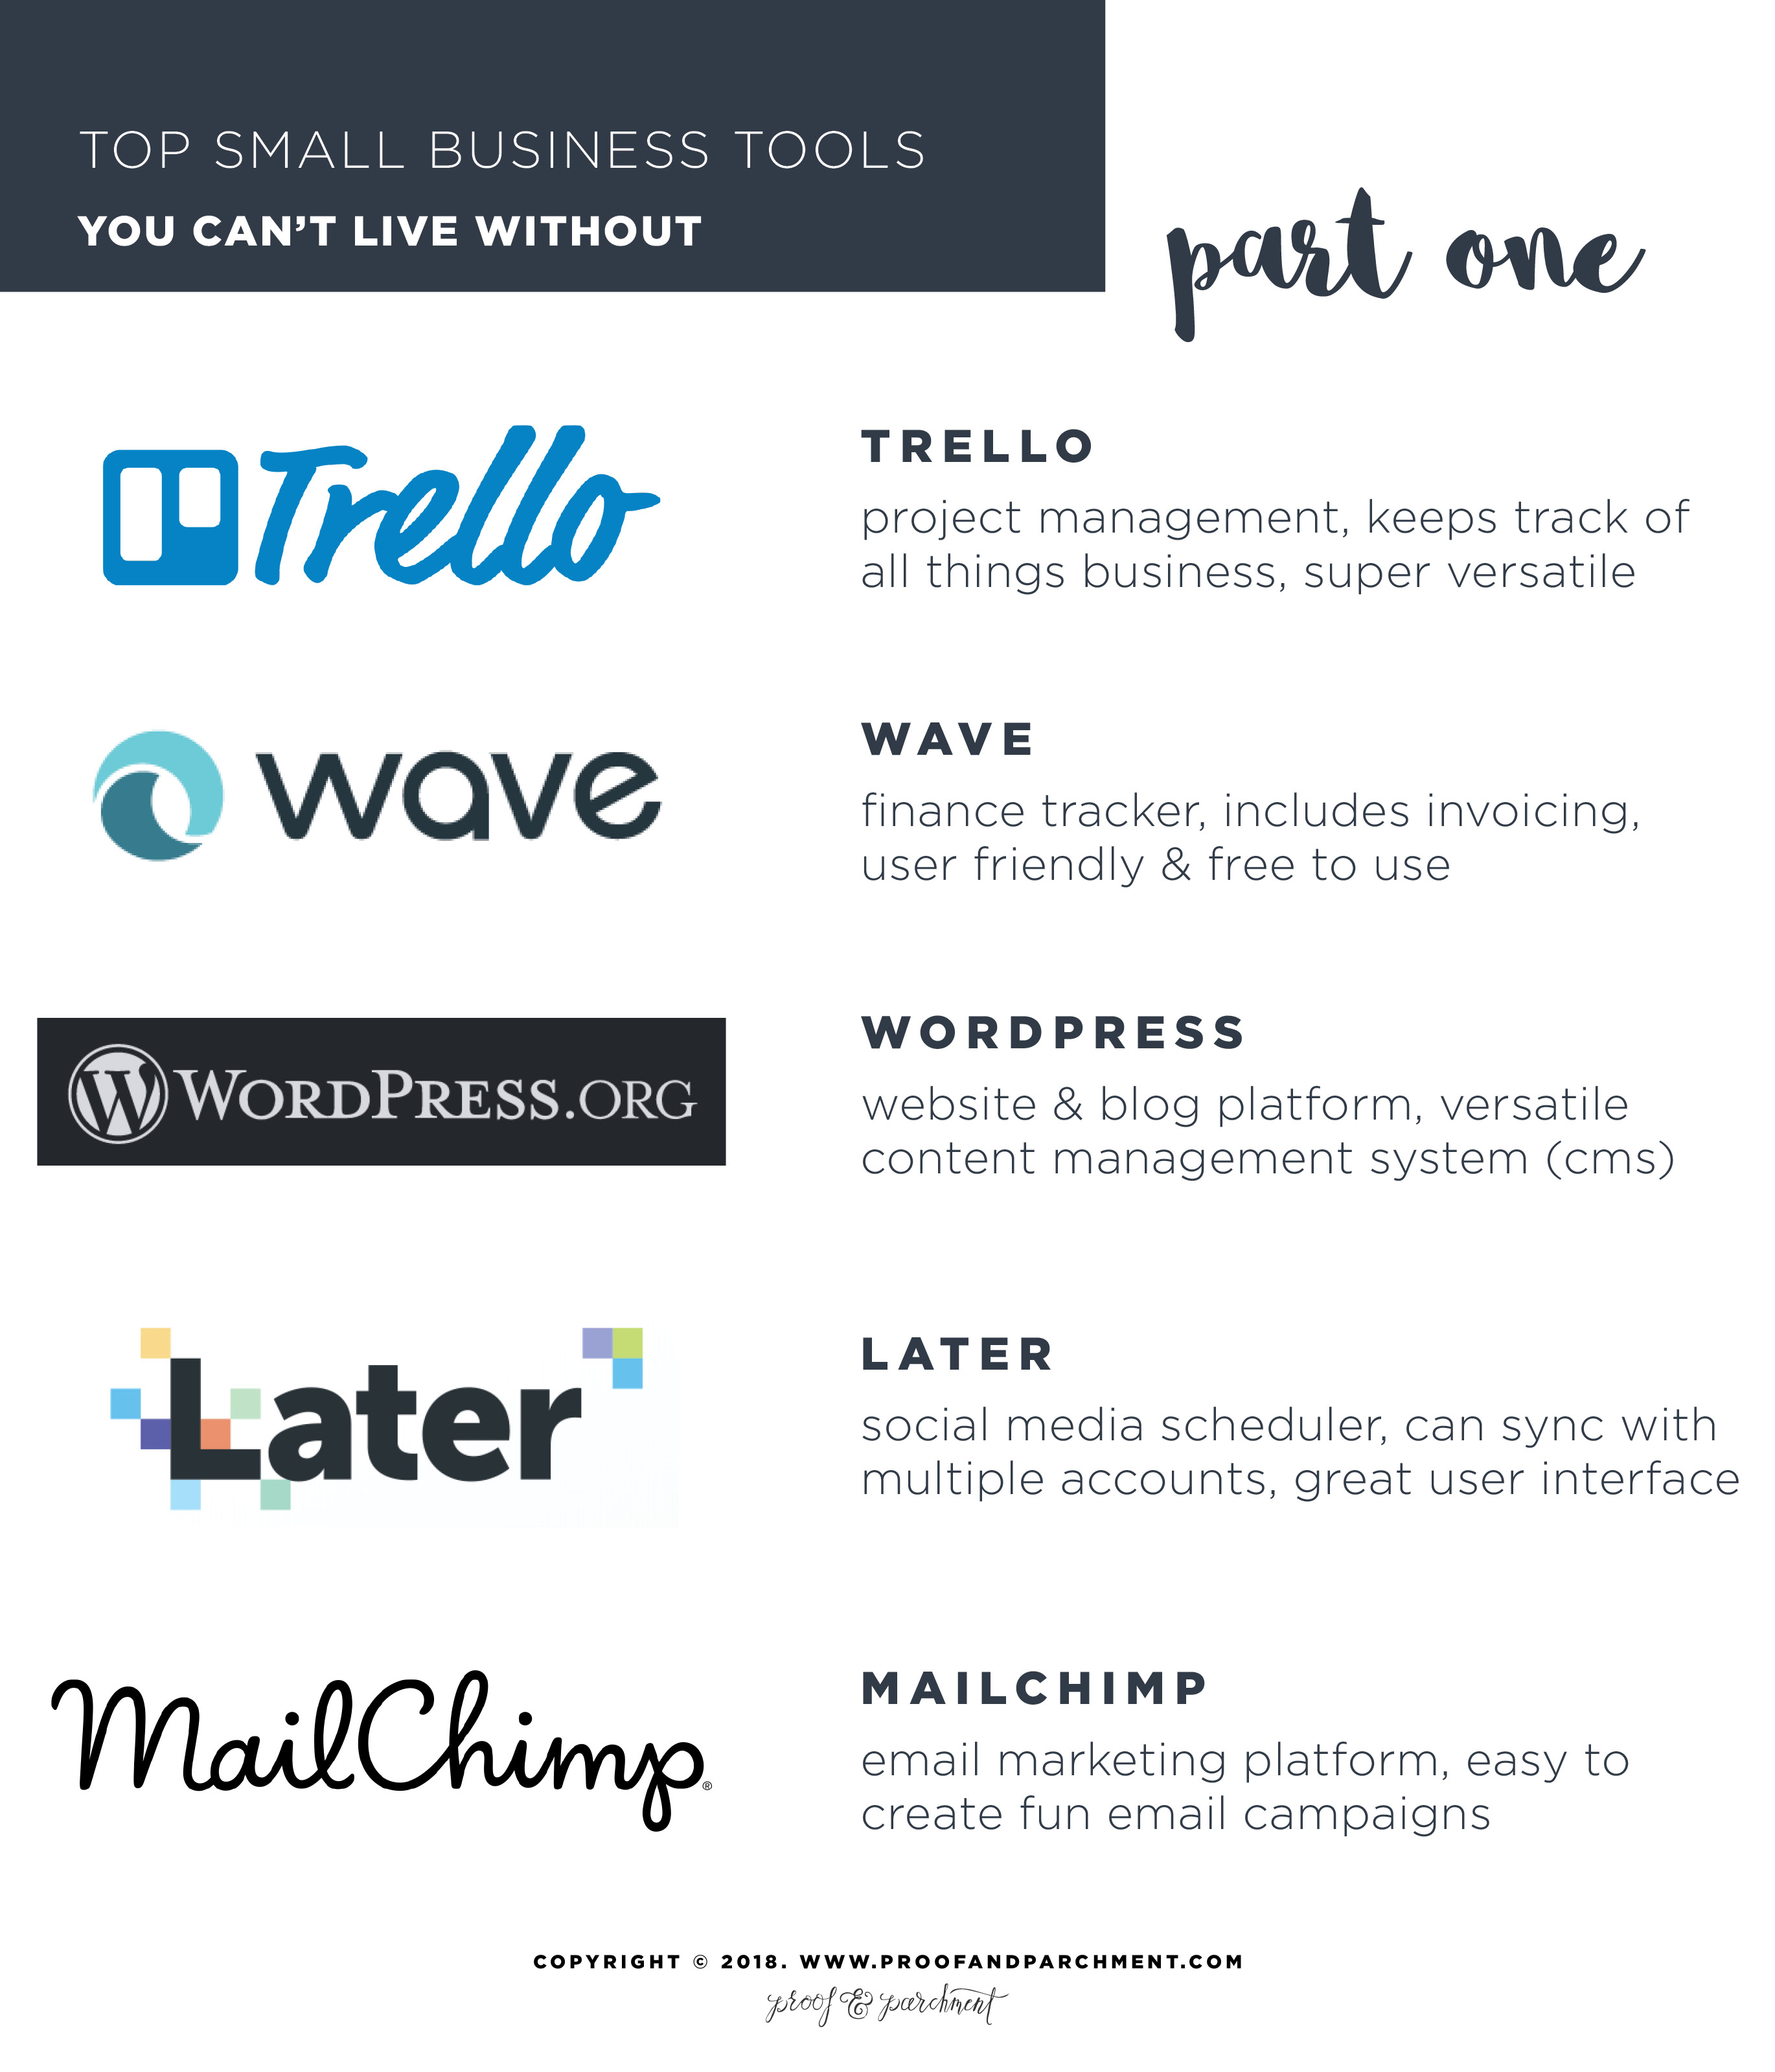 Top Small Business Tools You Can't Live Without Part One Infographic on Trello, Wave, WordPress, Later, MailChimp